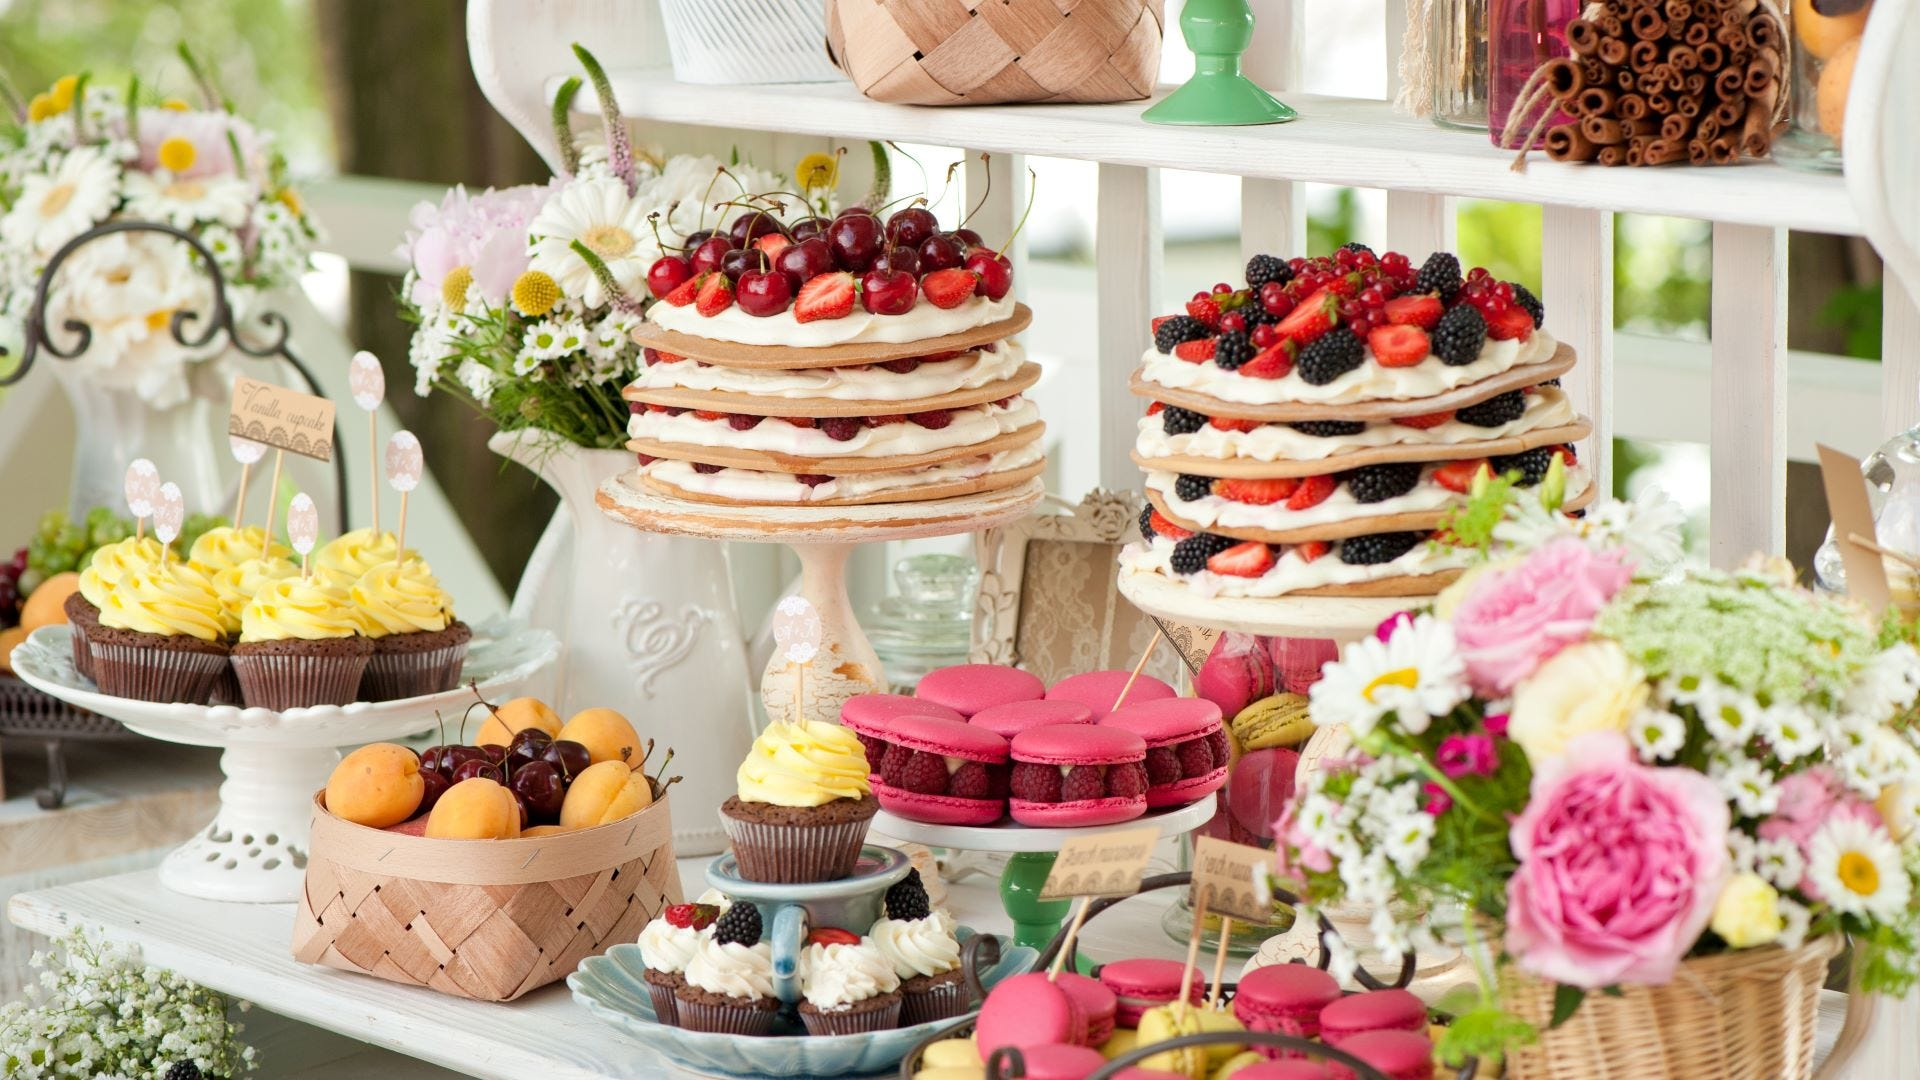 Wedding cakes and pastries.